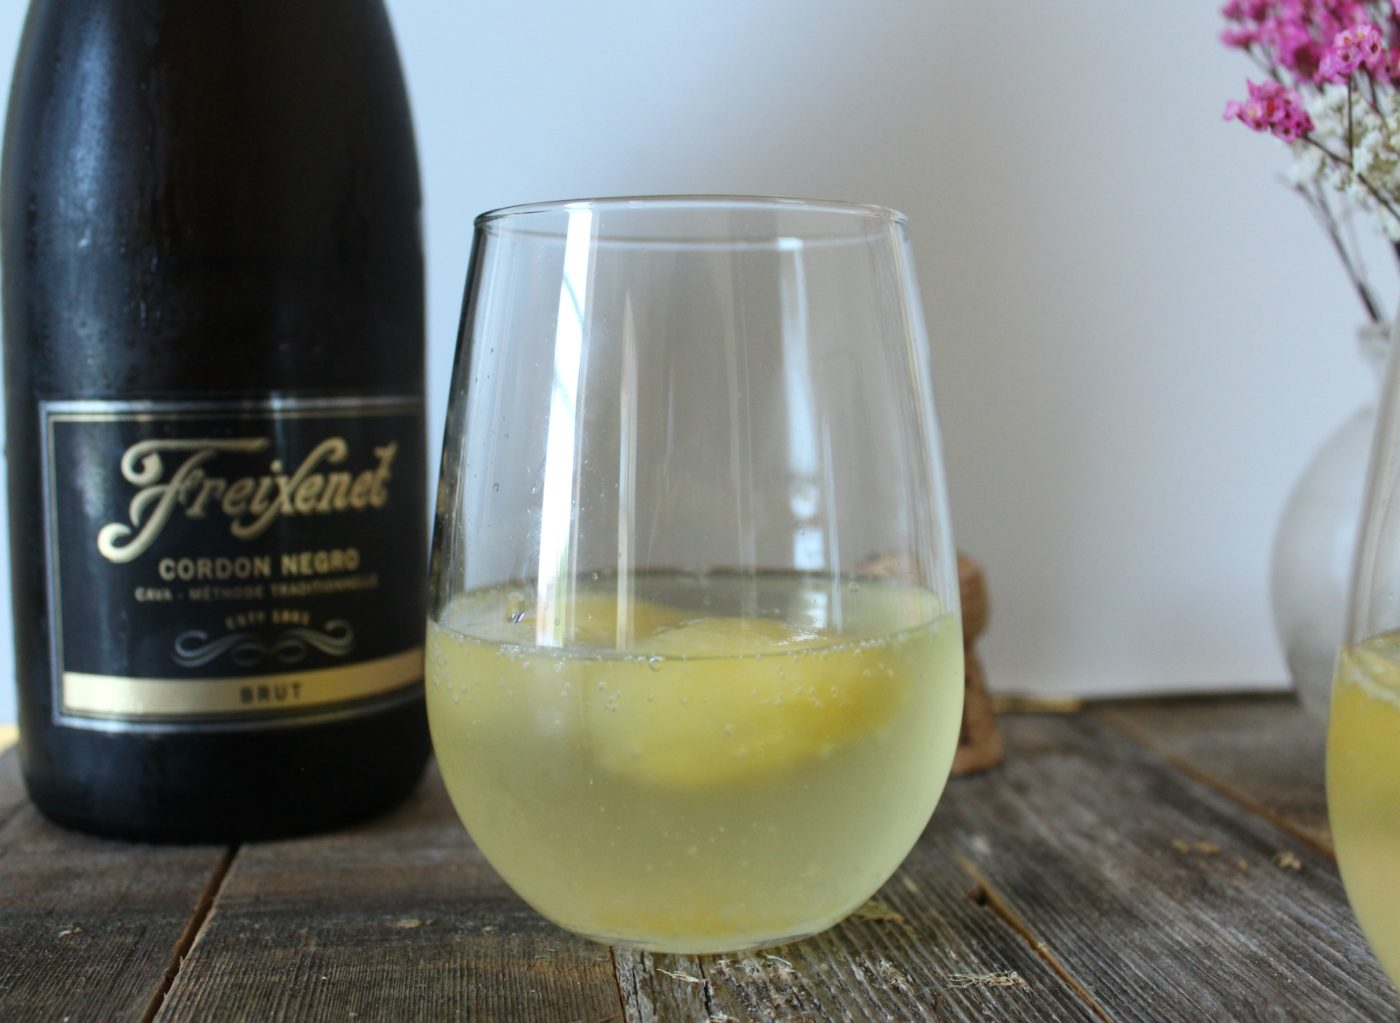 Make creative mimosas by freezing your favorite juice and adding them to a glass of champagne.